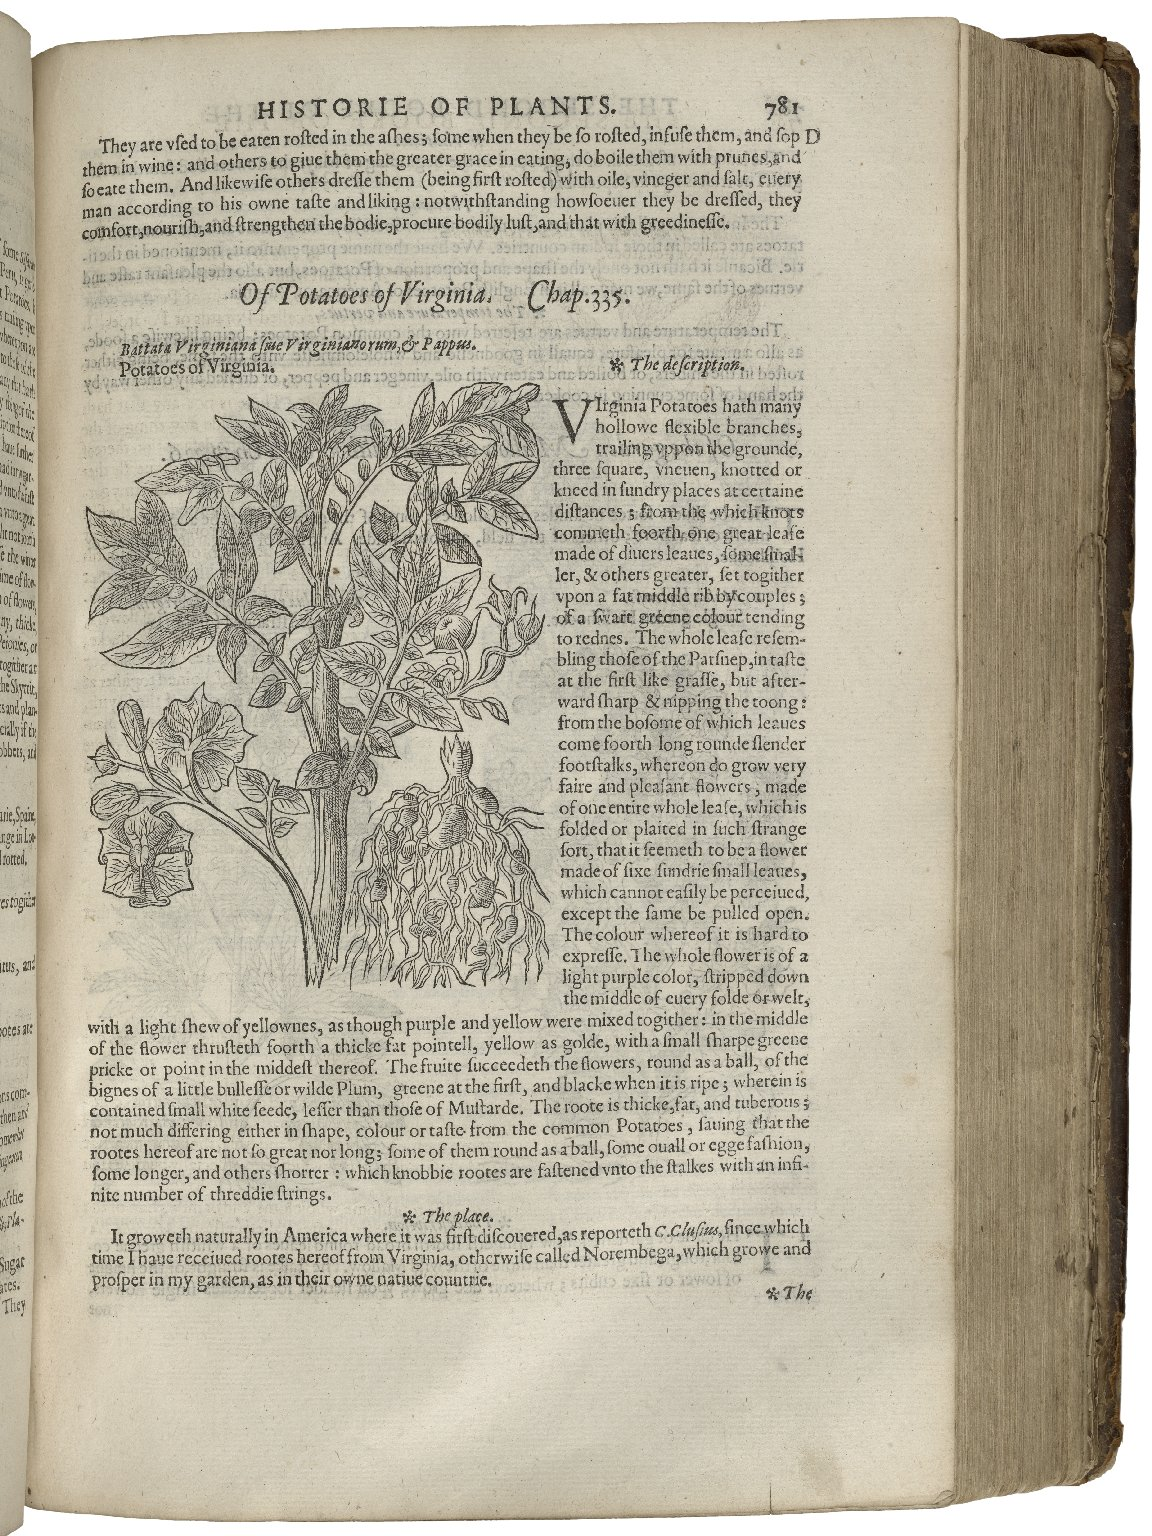 """Of Potatoes of Virginia,"" in John Gerard, The Herball (London, 1597). Image courtesy of the Folger Shakespeare Library."